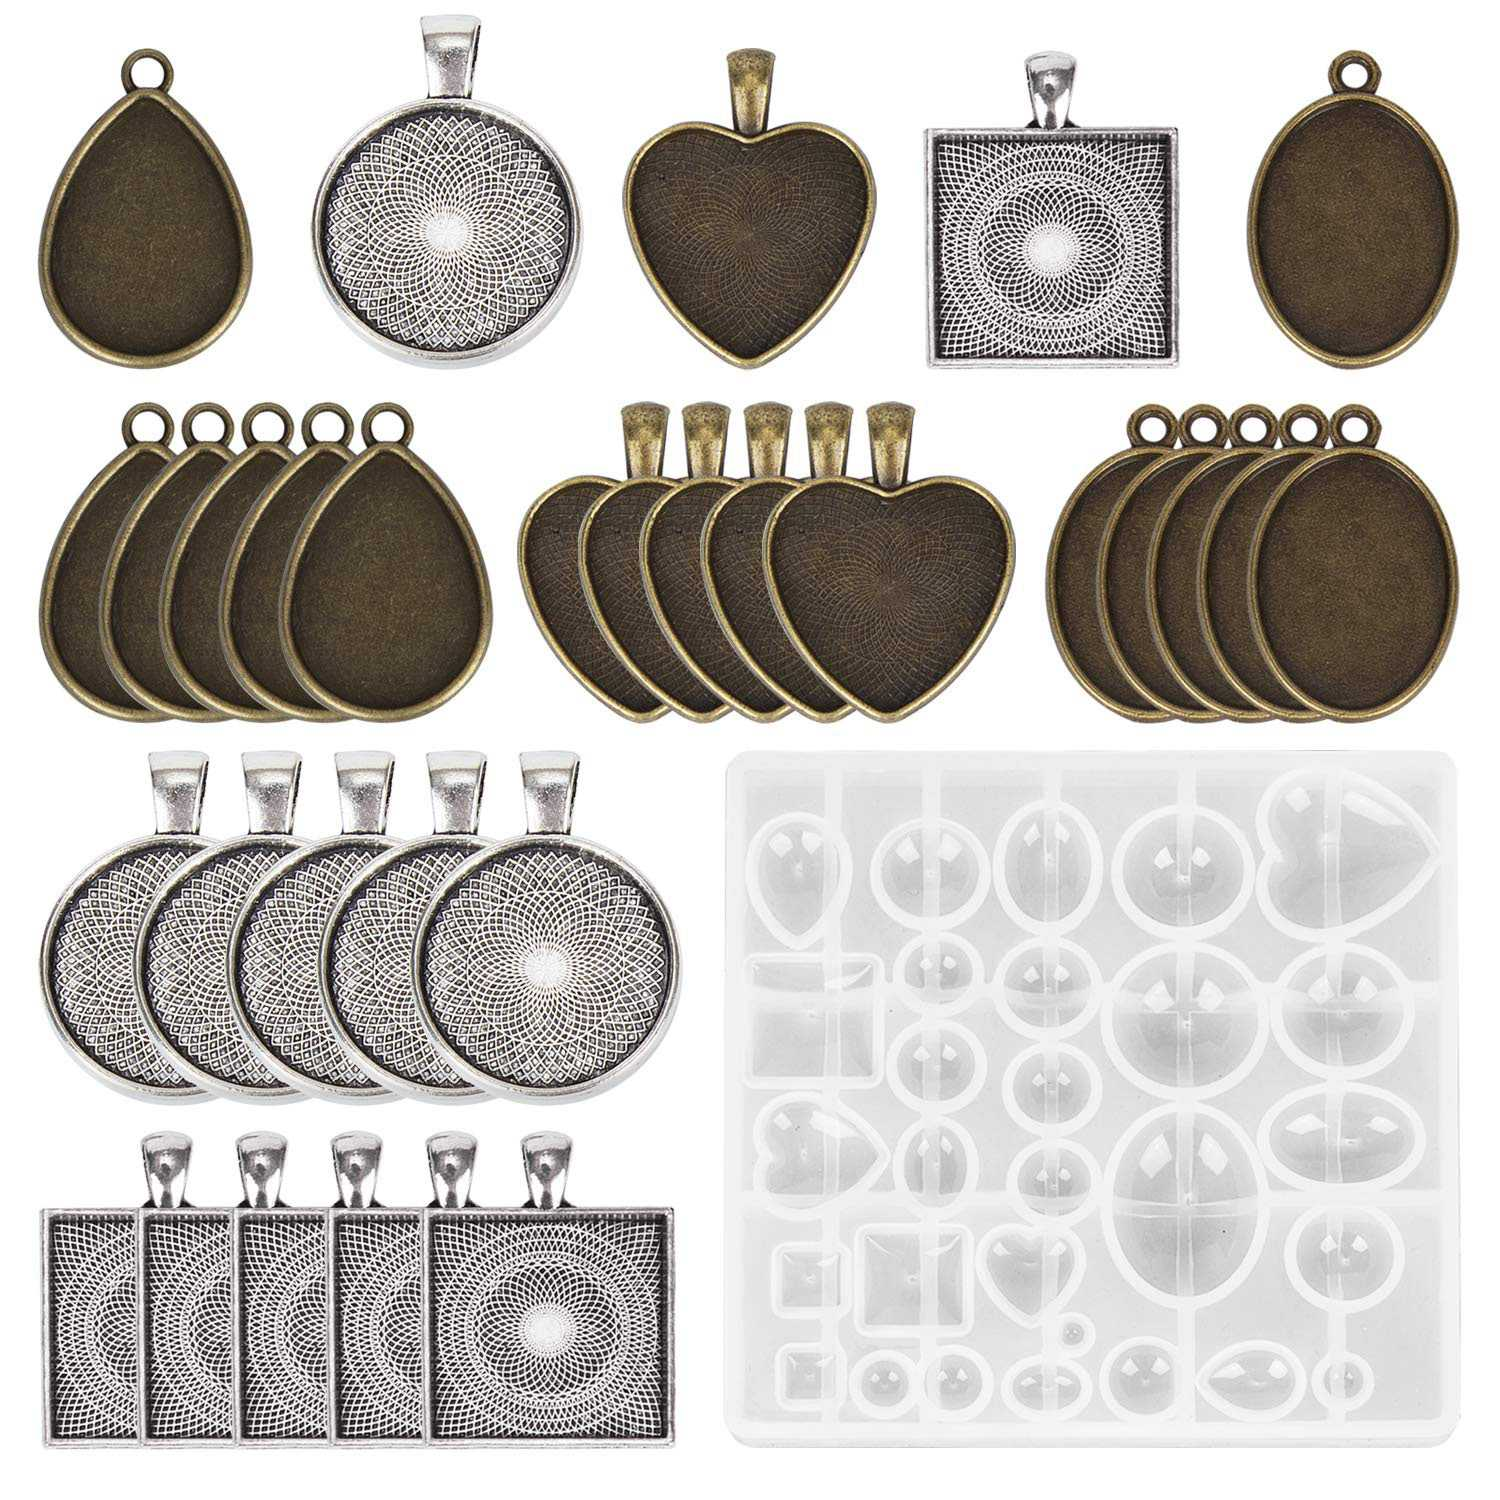 30 Pieces 5 Styles Pendant Trays Round & Square Heart & Teardrop & Oval,And 1 Pcs Jewelry Casting Molds For Pendant Crafting D